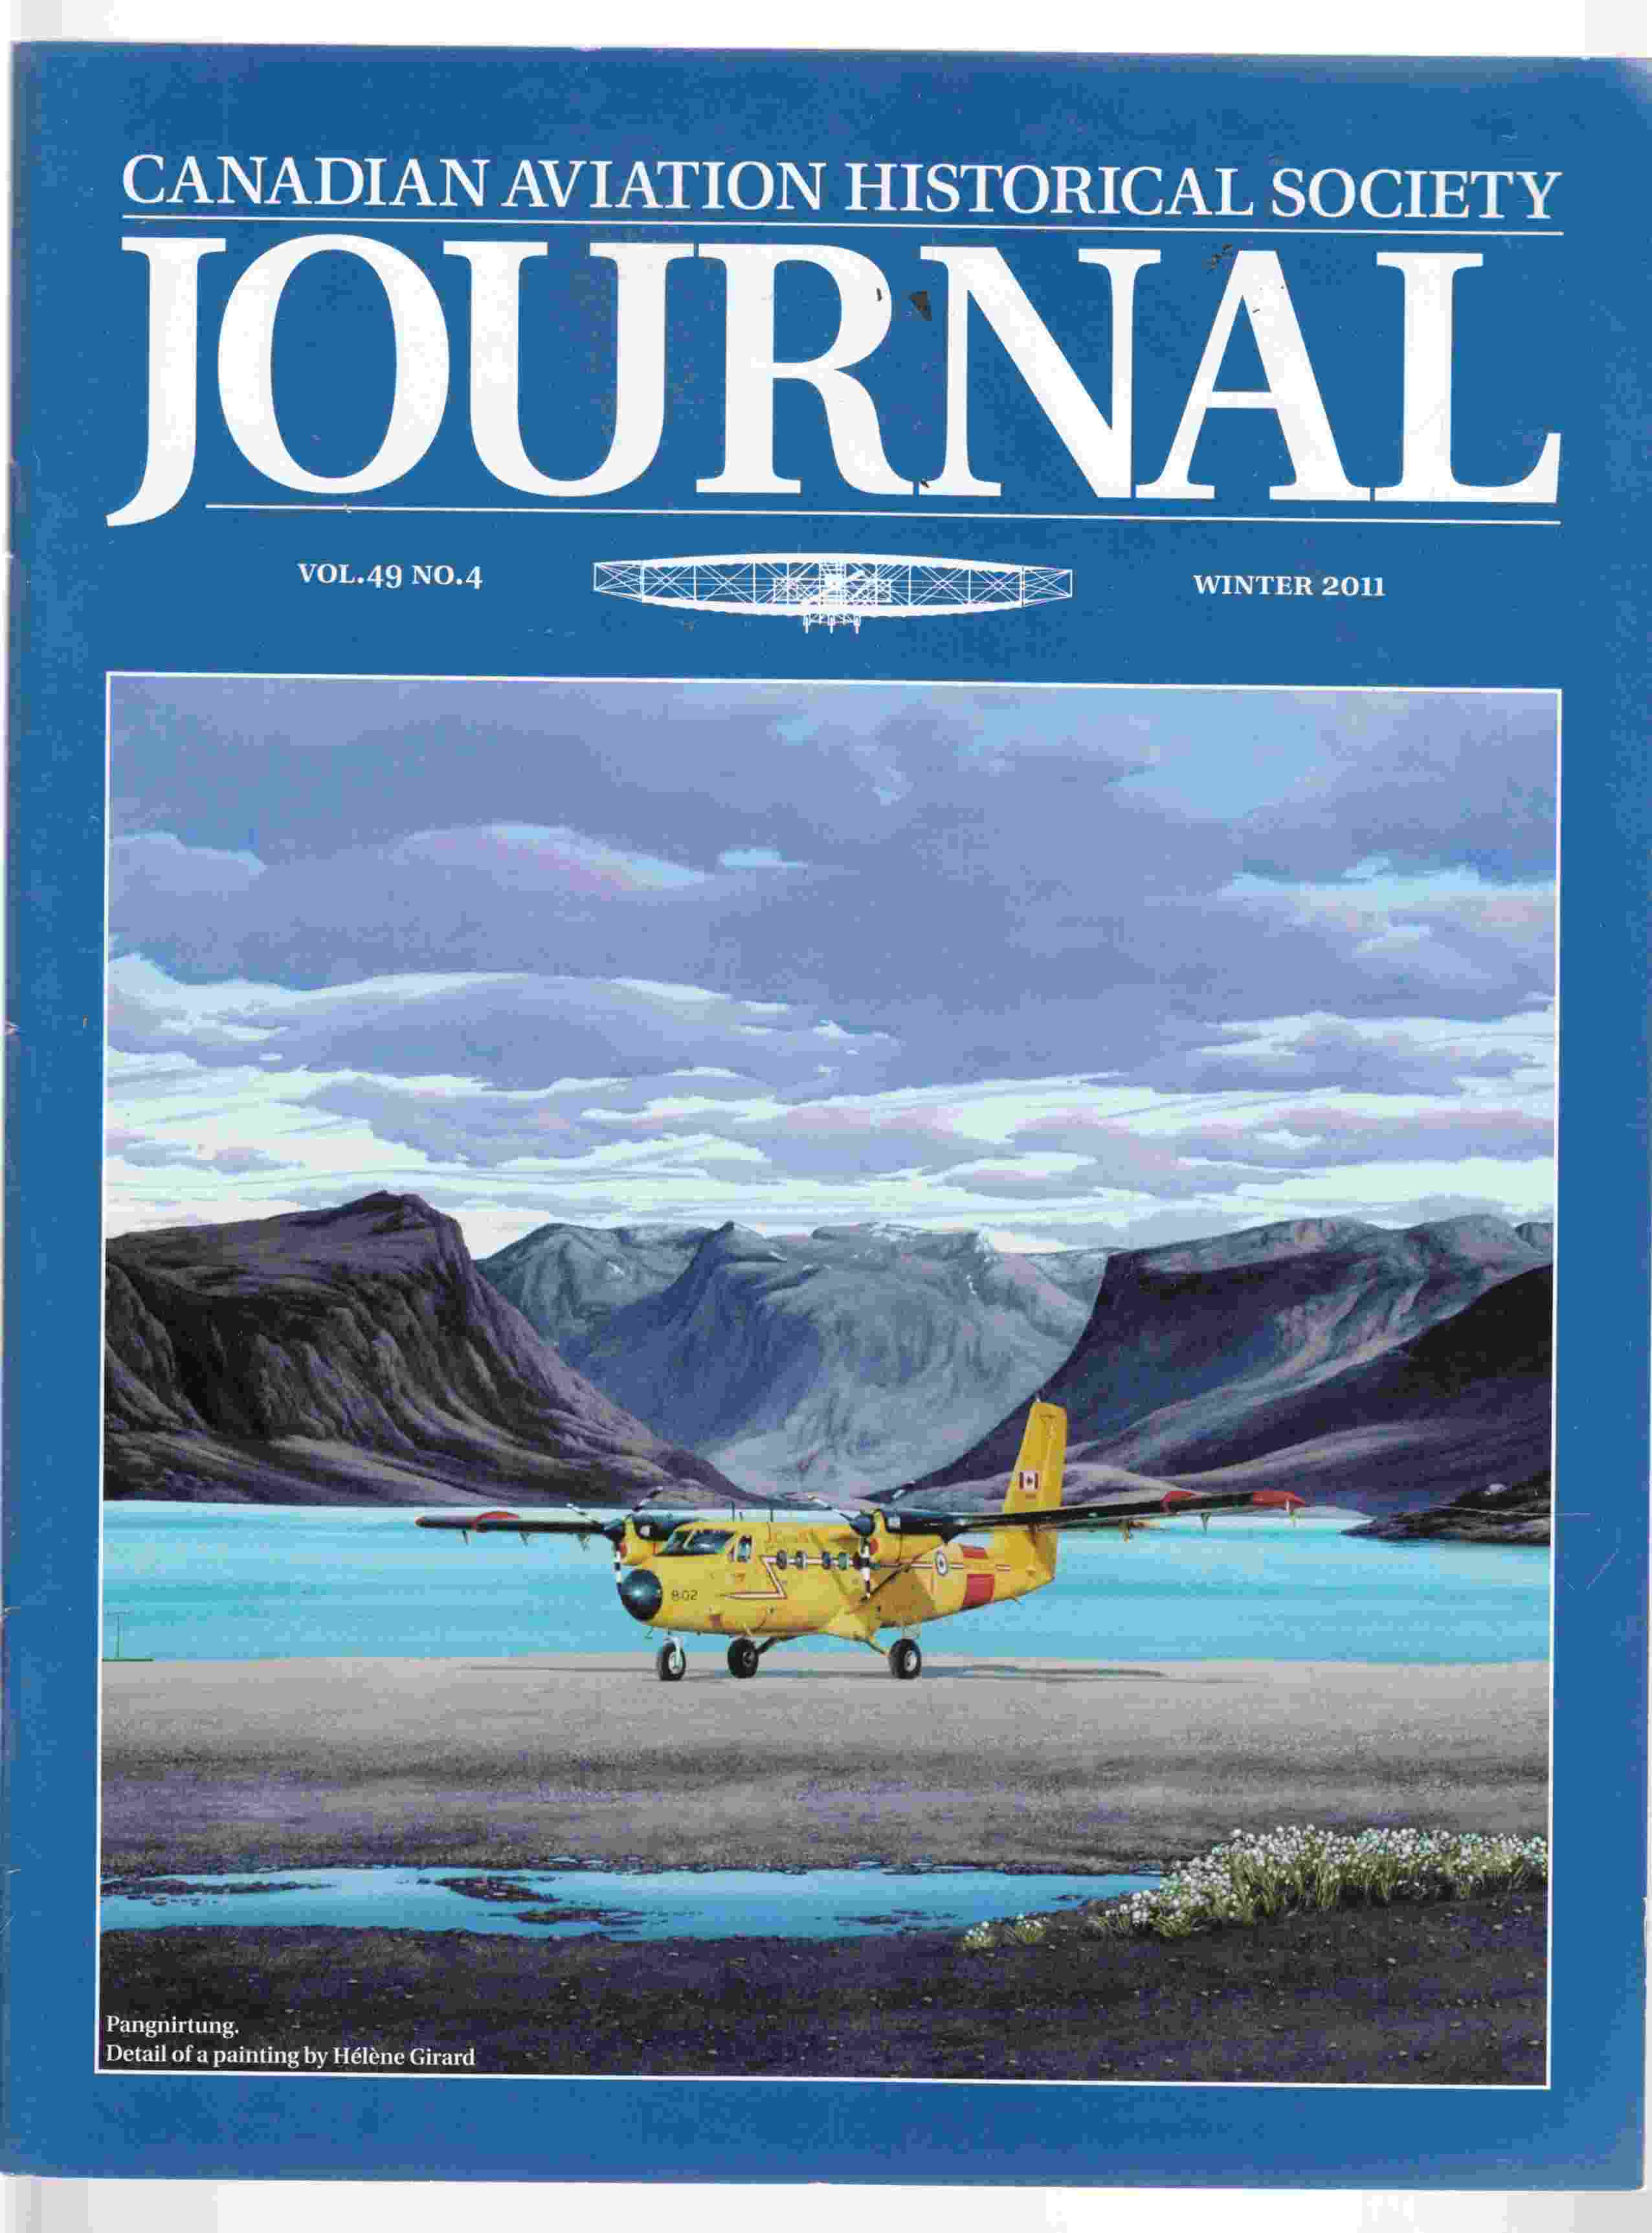 Image for Canadian Aviation Historical Society Journal Vol. 49 No. 4 Winter 2011